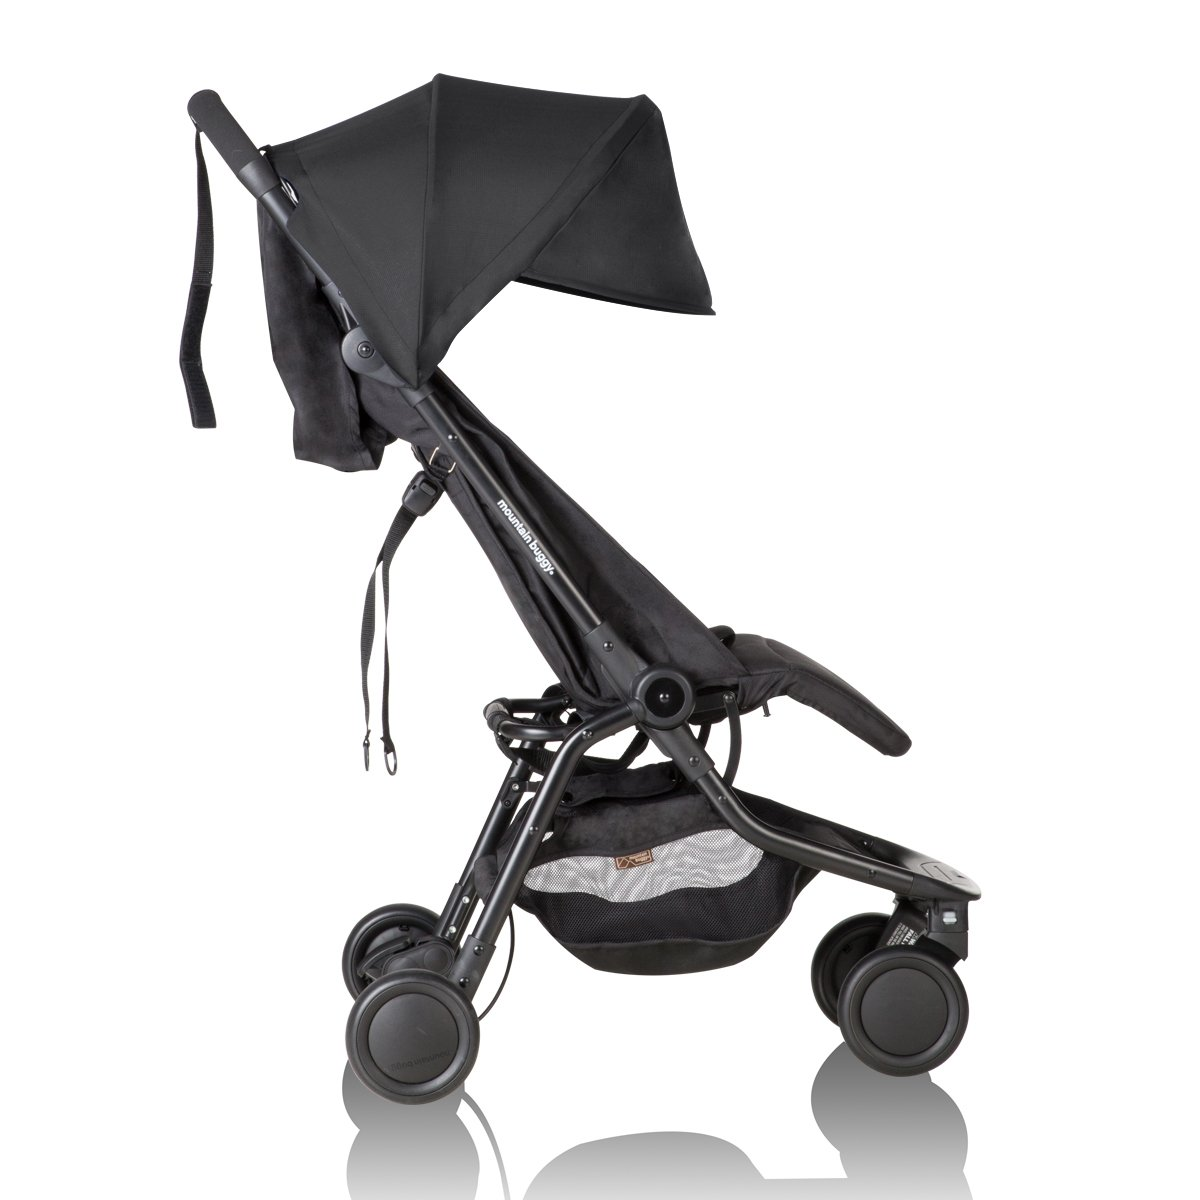 Mountain Buggy Nano Stroller, Black Bundle with Grab Bar & Food Tray - Lightweight, Easy to Assemble and Durable Compact Fold - Ideal for Family Travel by Mountain Buggy (Image #4)